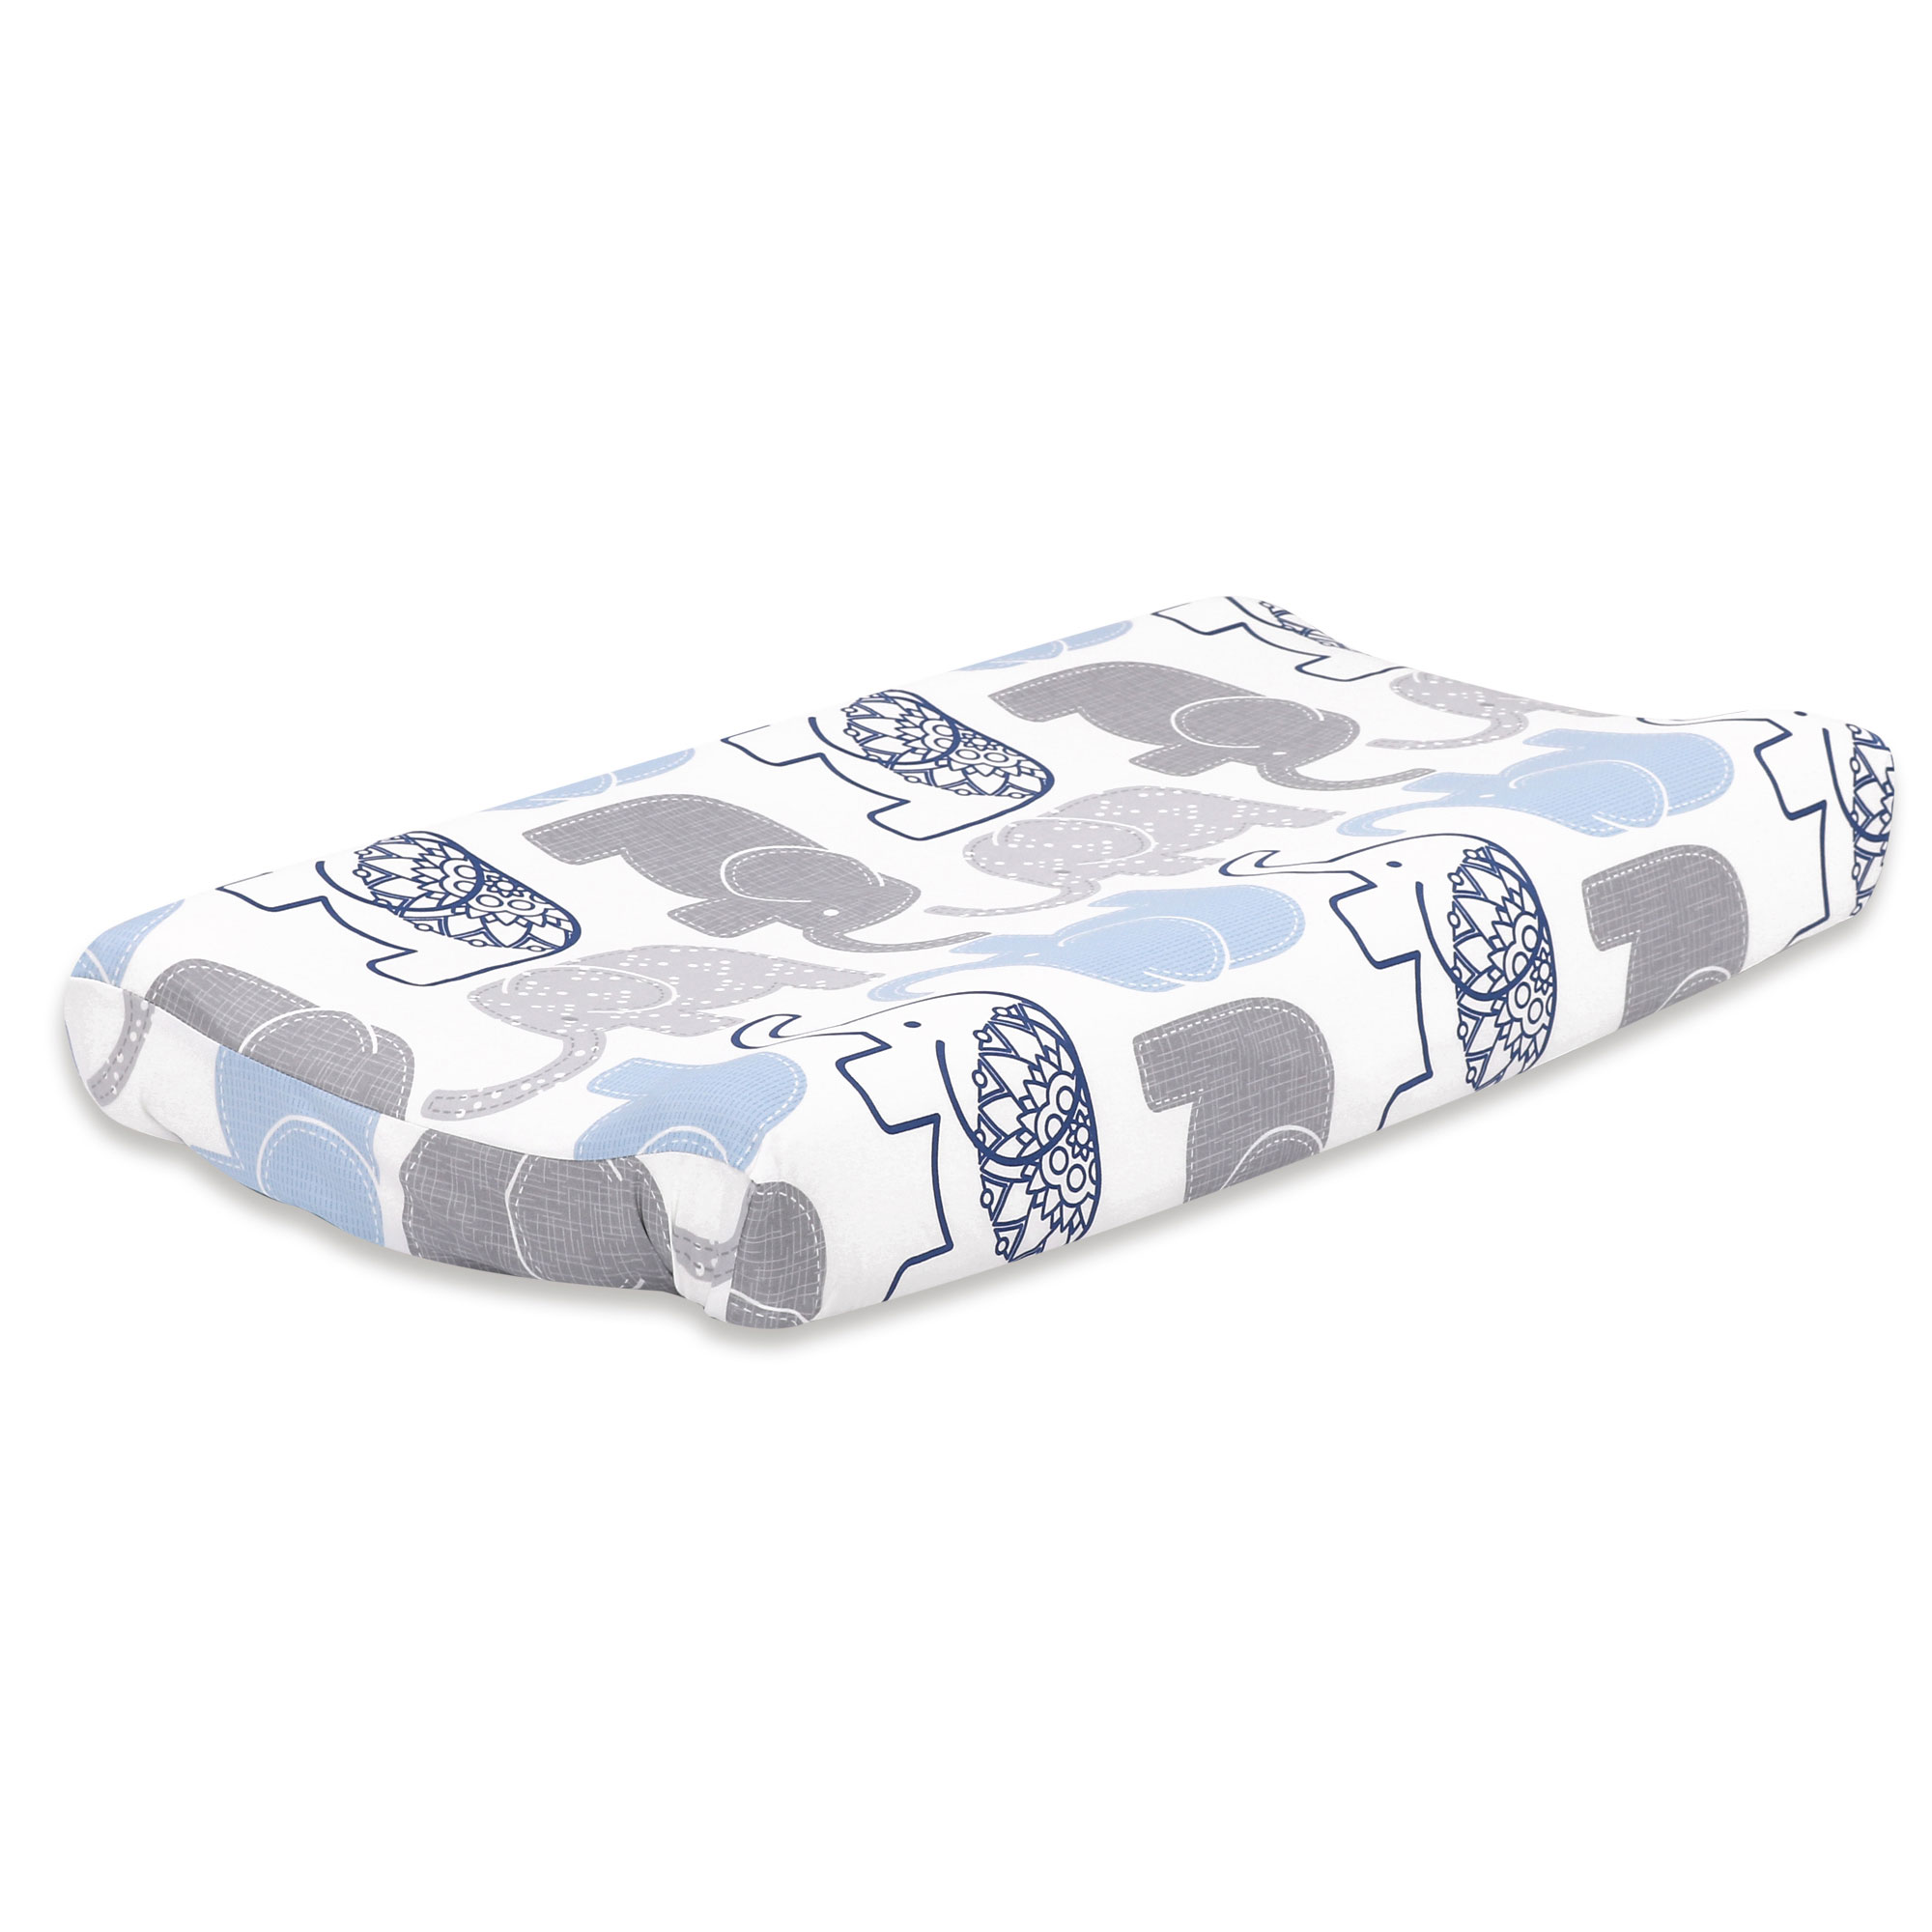 Little Peanut Grey and Blue Elephant Baby Changing Pad Cover